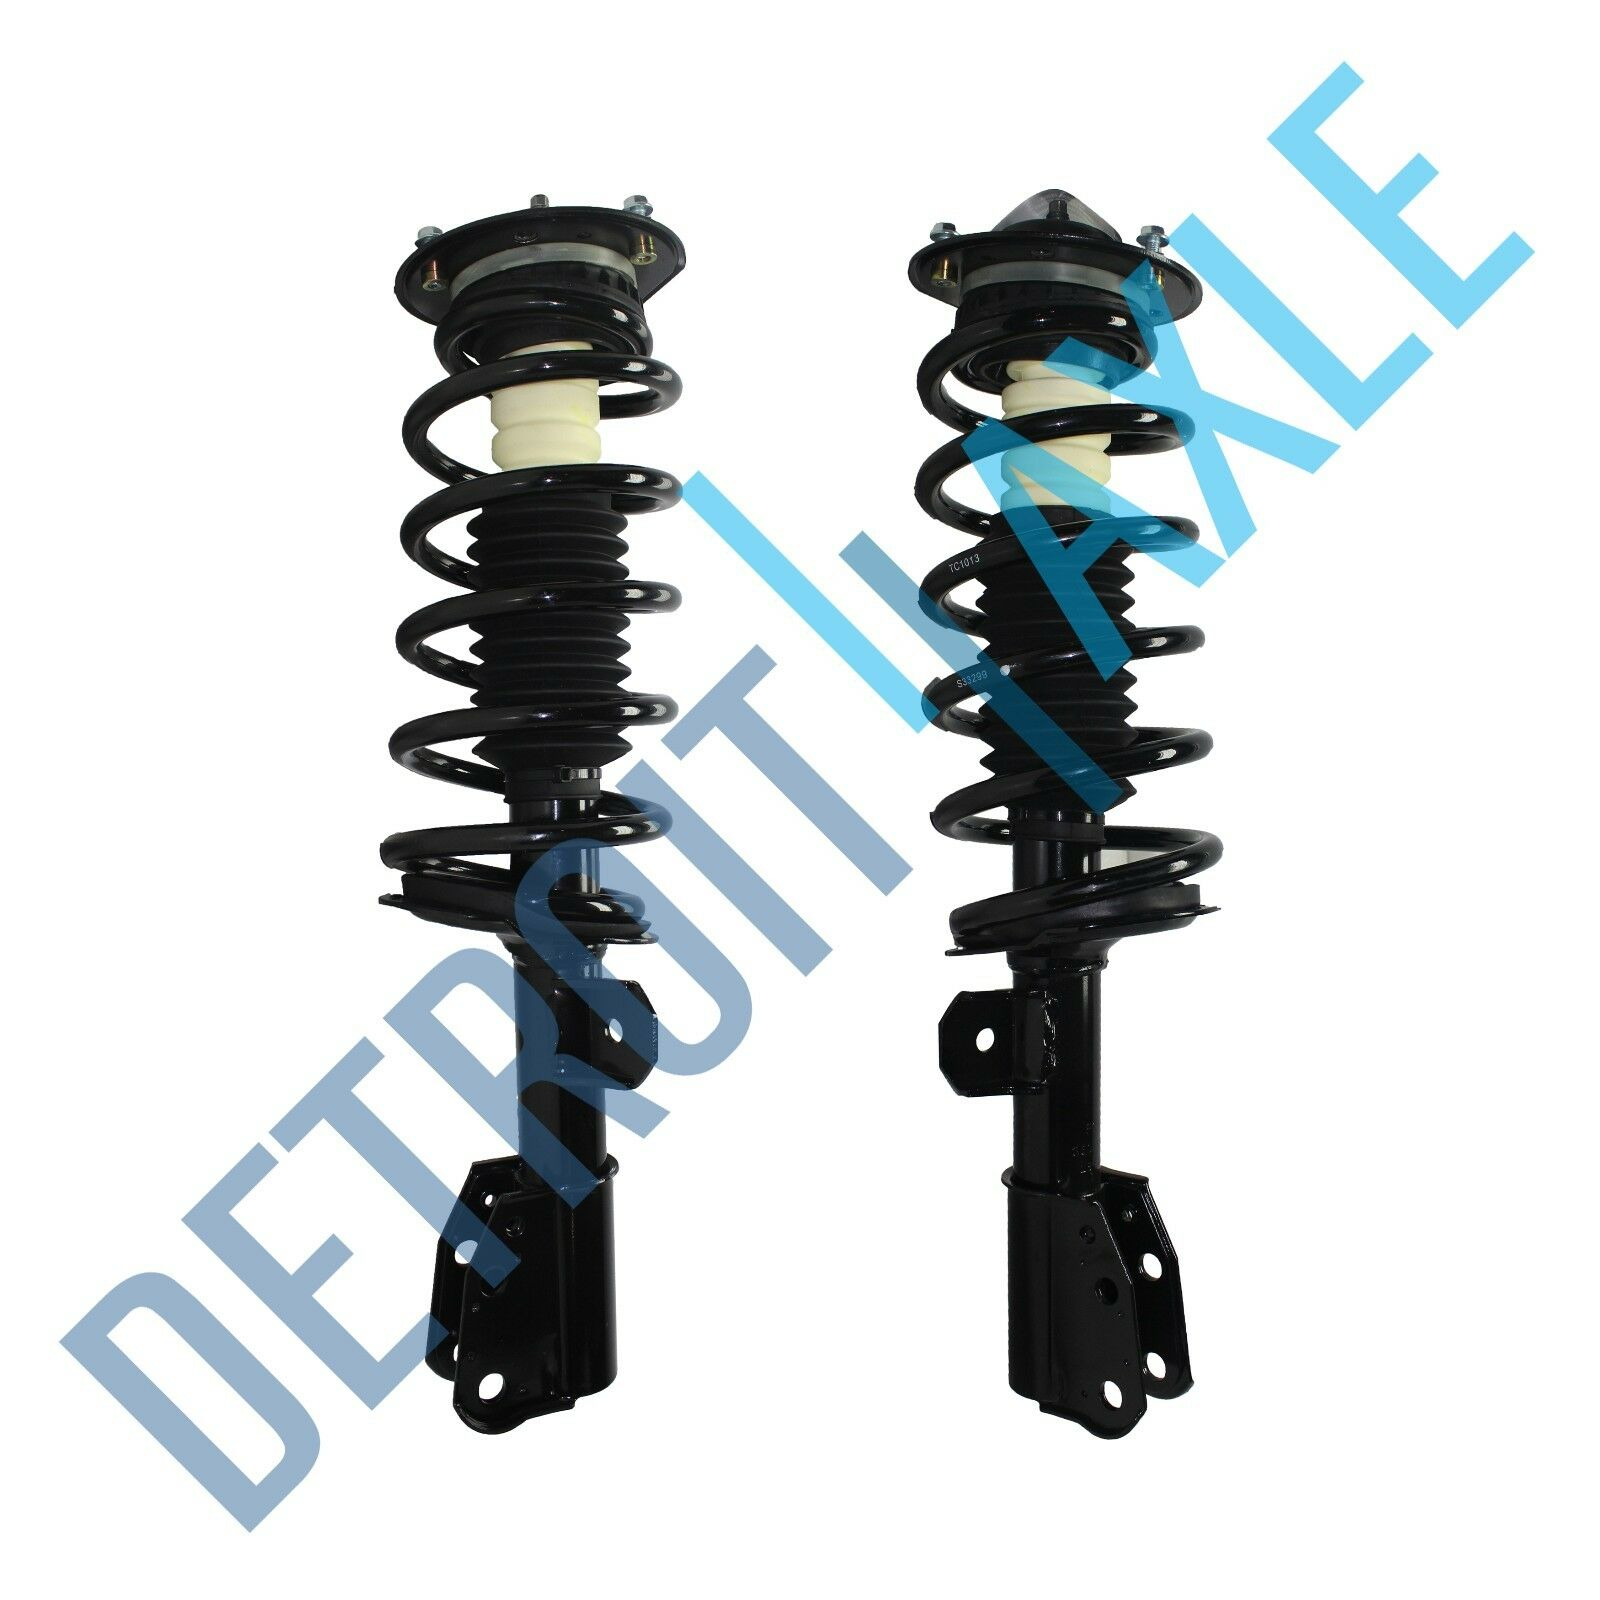 Both-2-Front-Driver-Passenger-Quick-Install-Ready-Strut-Assembly-Vue